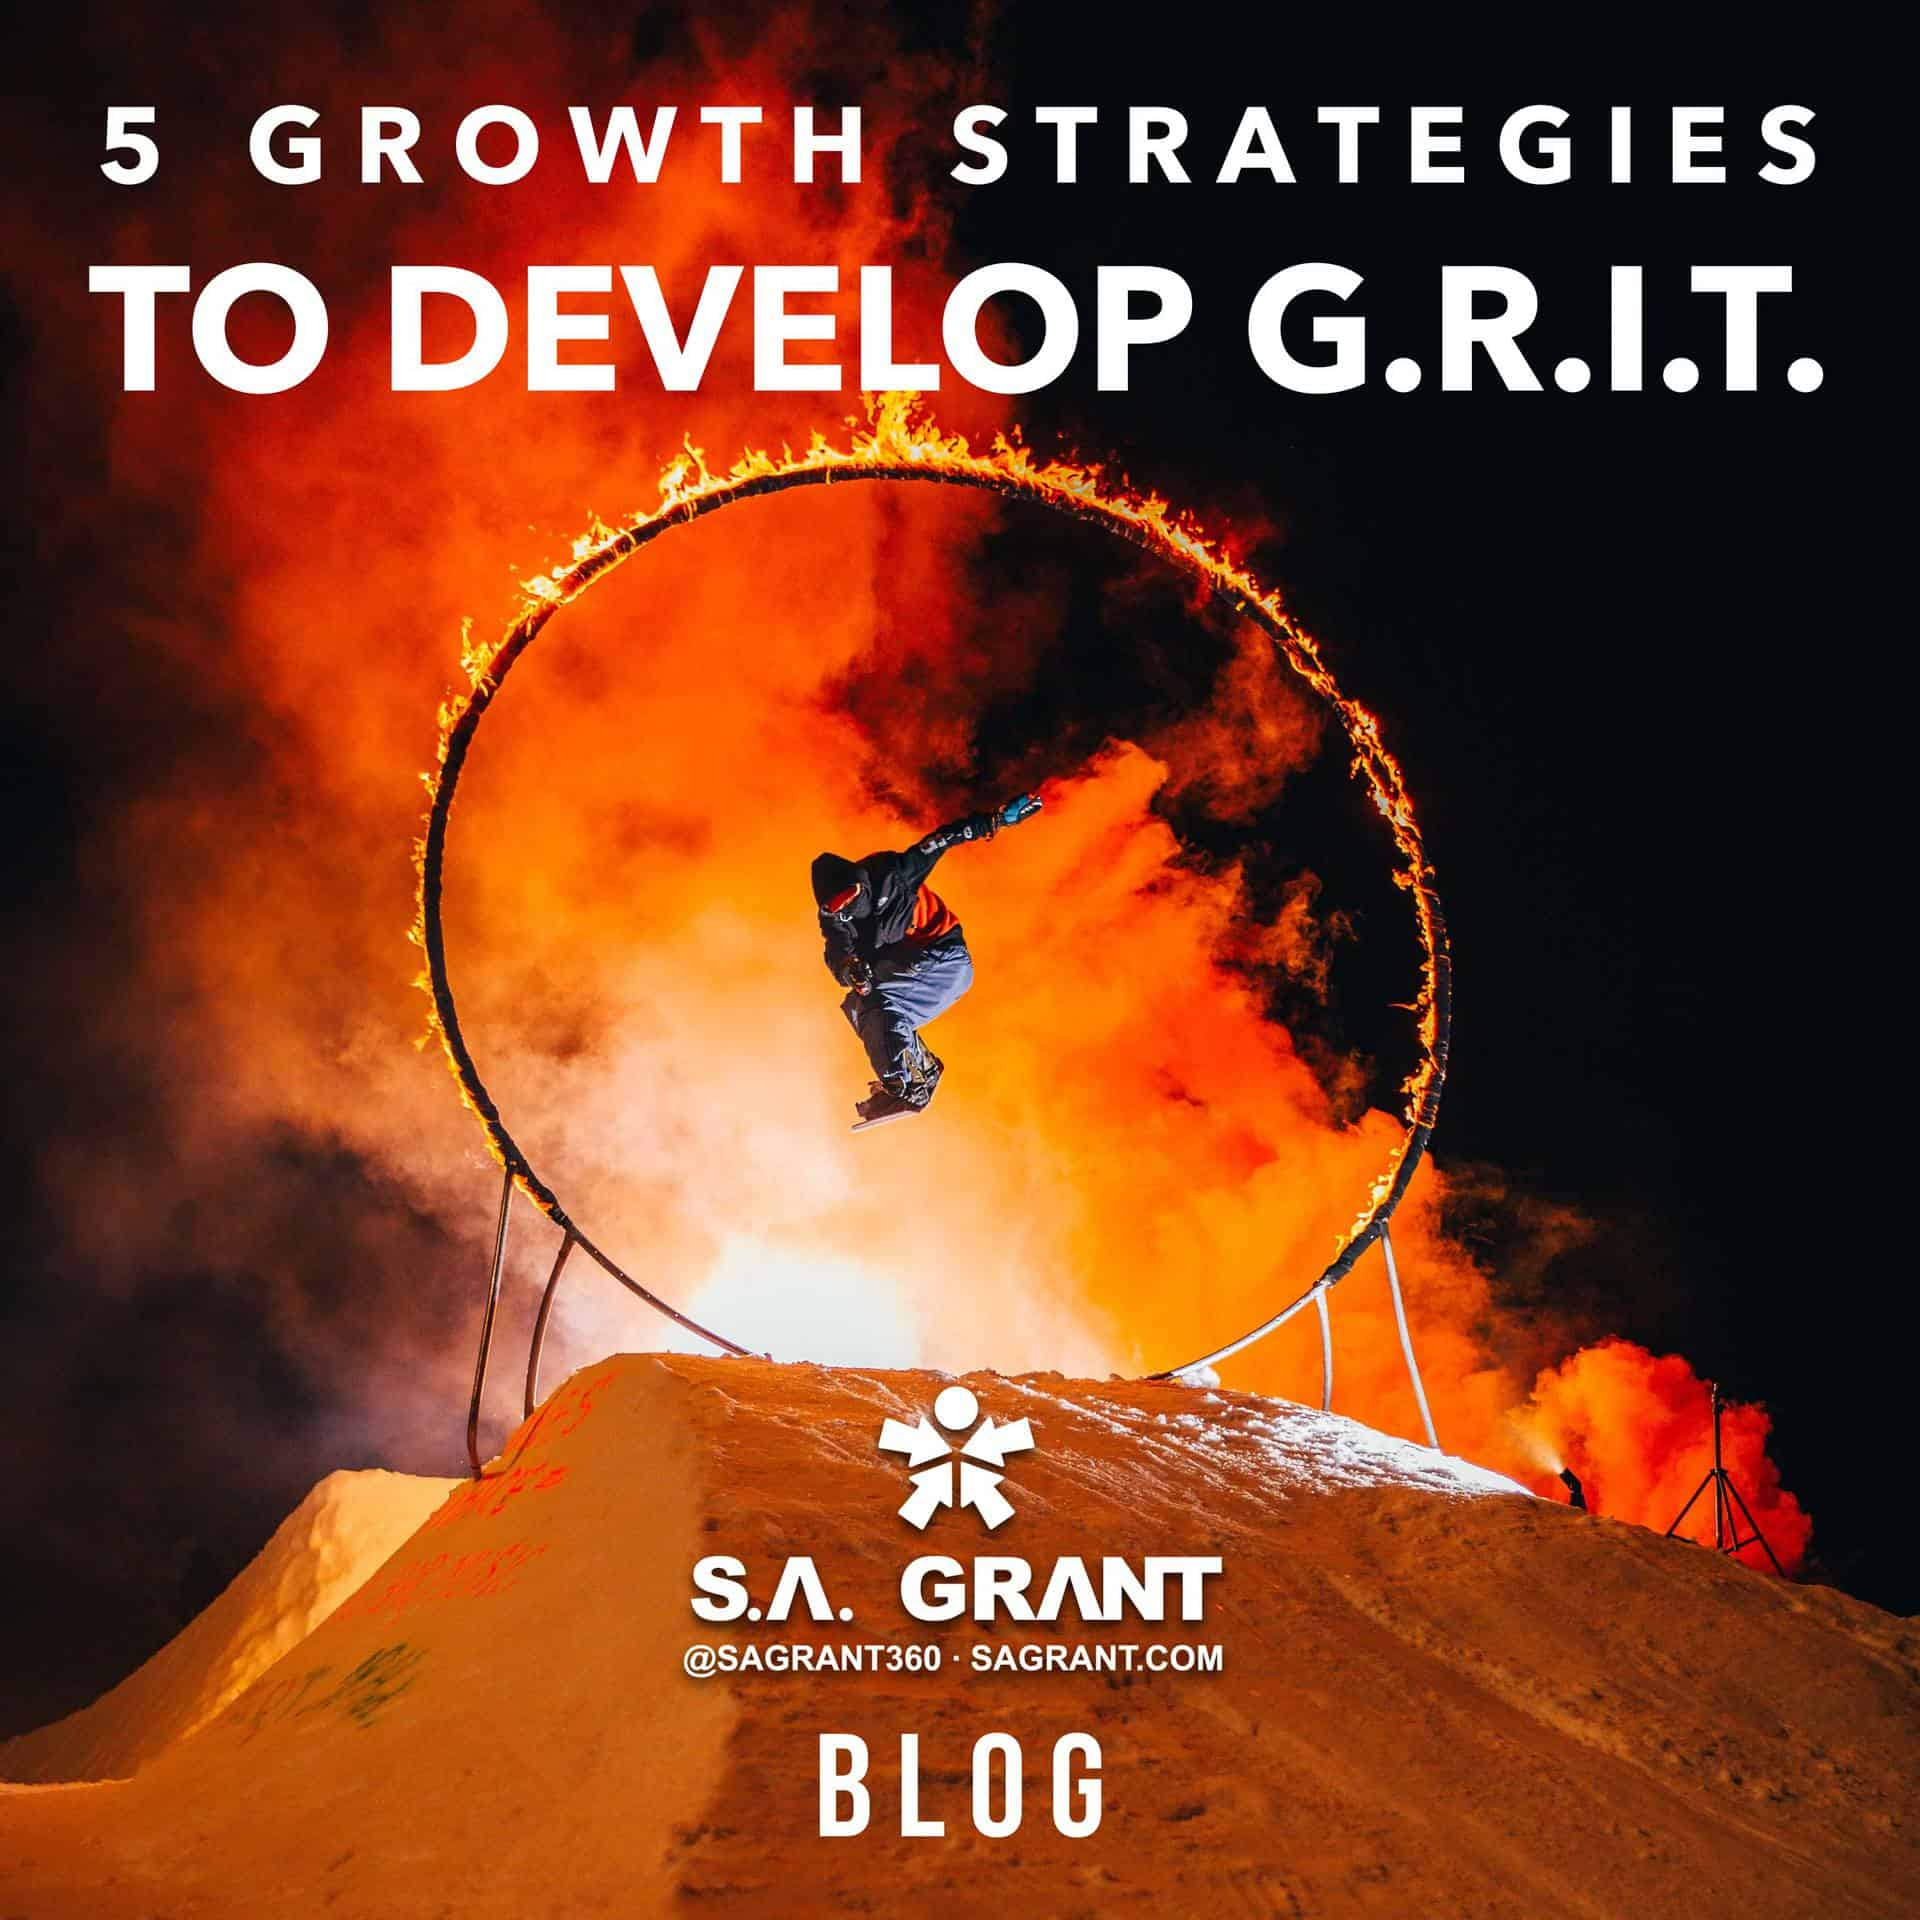 5 Growth Strategies To Develop GRIT